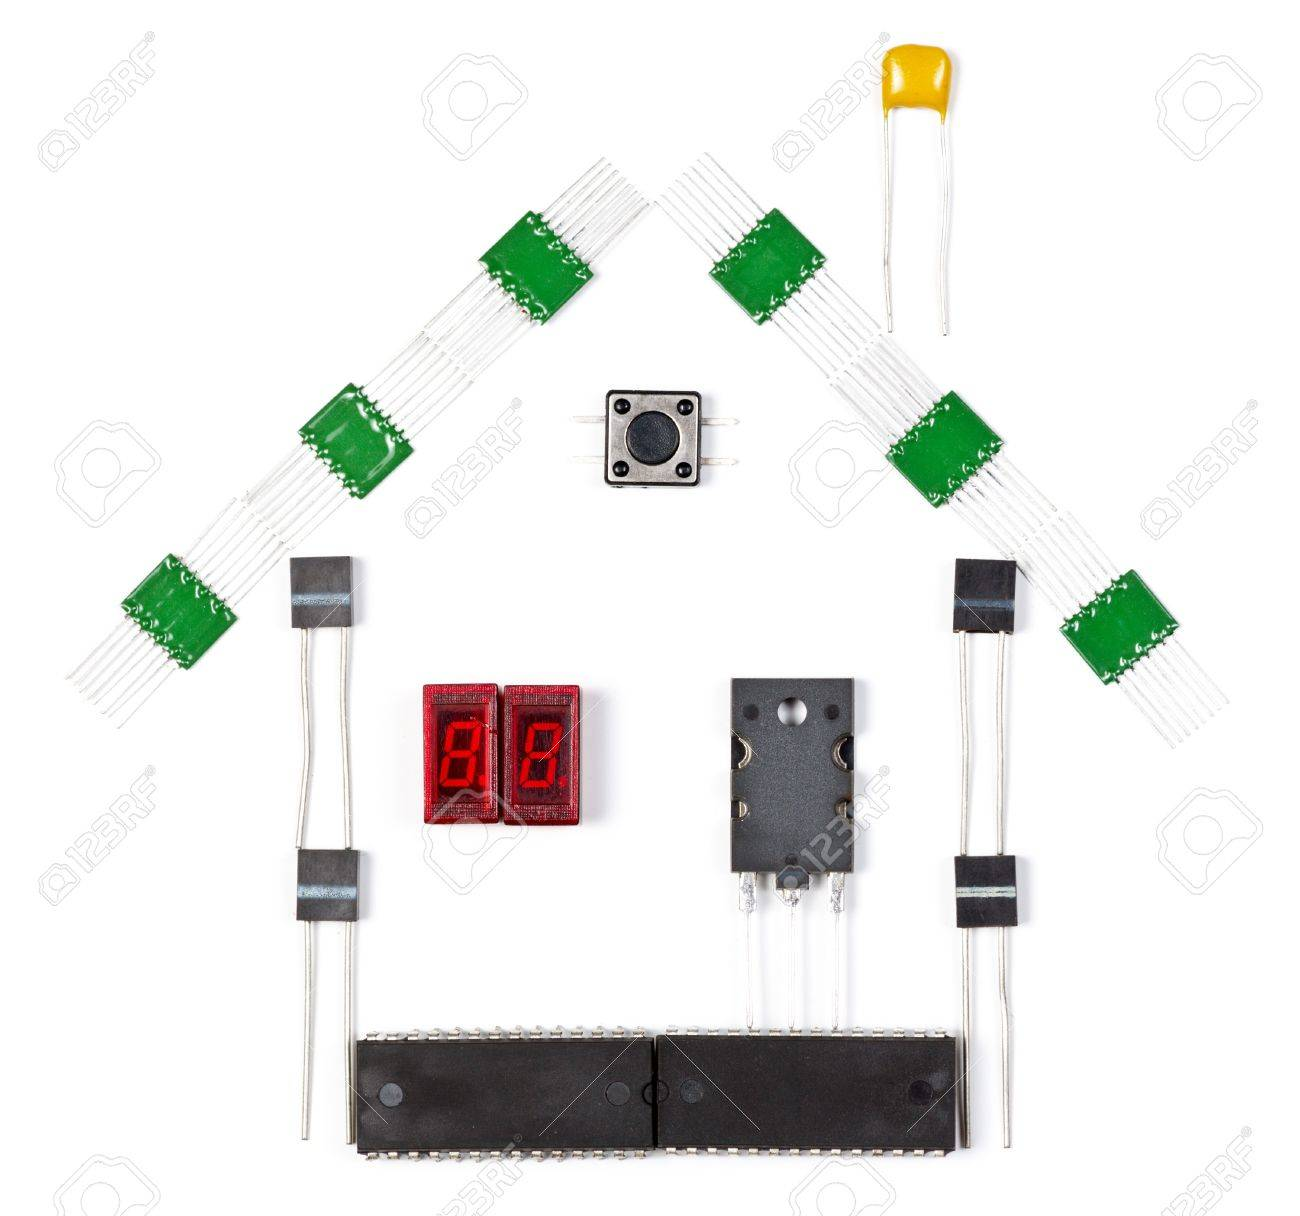 House made of electronic components on white background Stock Photo - 16878435